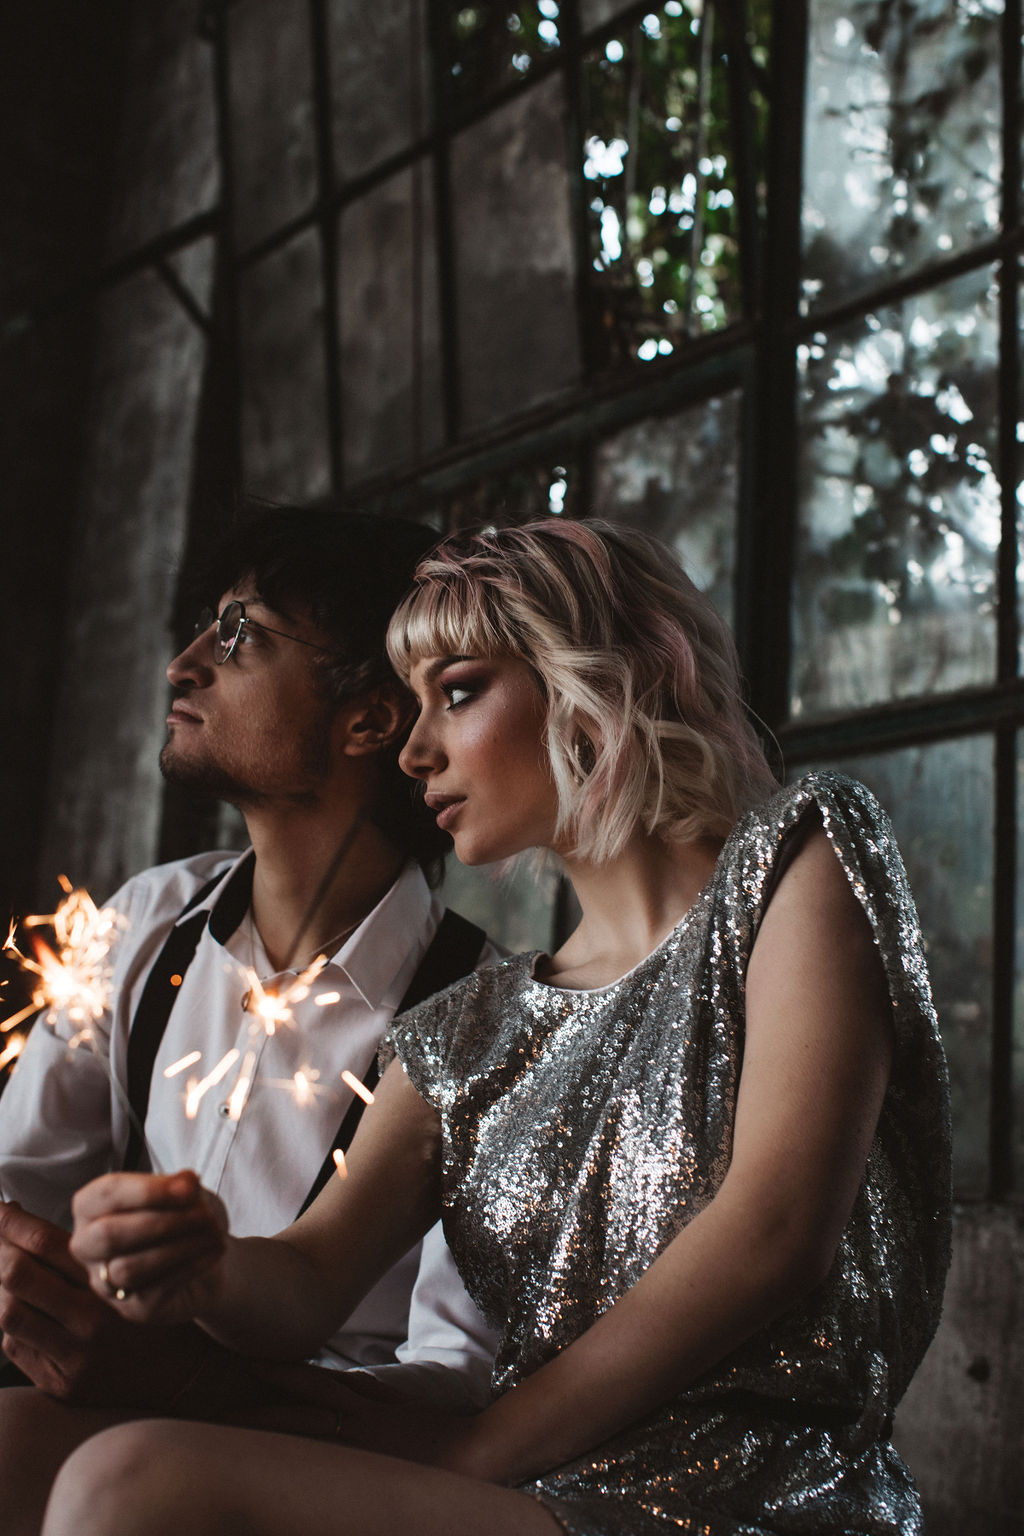 modern industrial wedding - alternative wedding - unconventional wedding - edgy wedding - bride and groom with sparklers - creative wedding photography